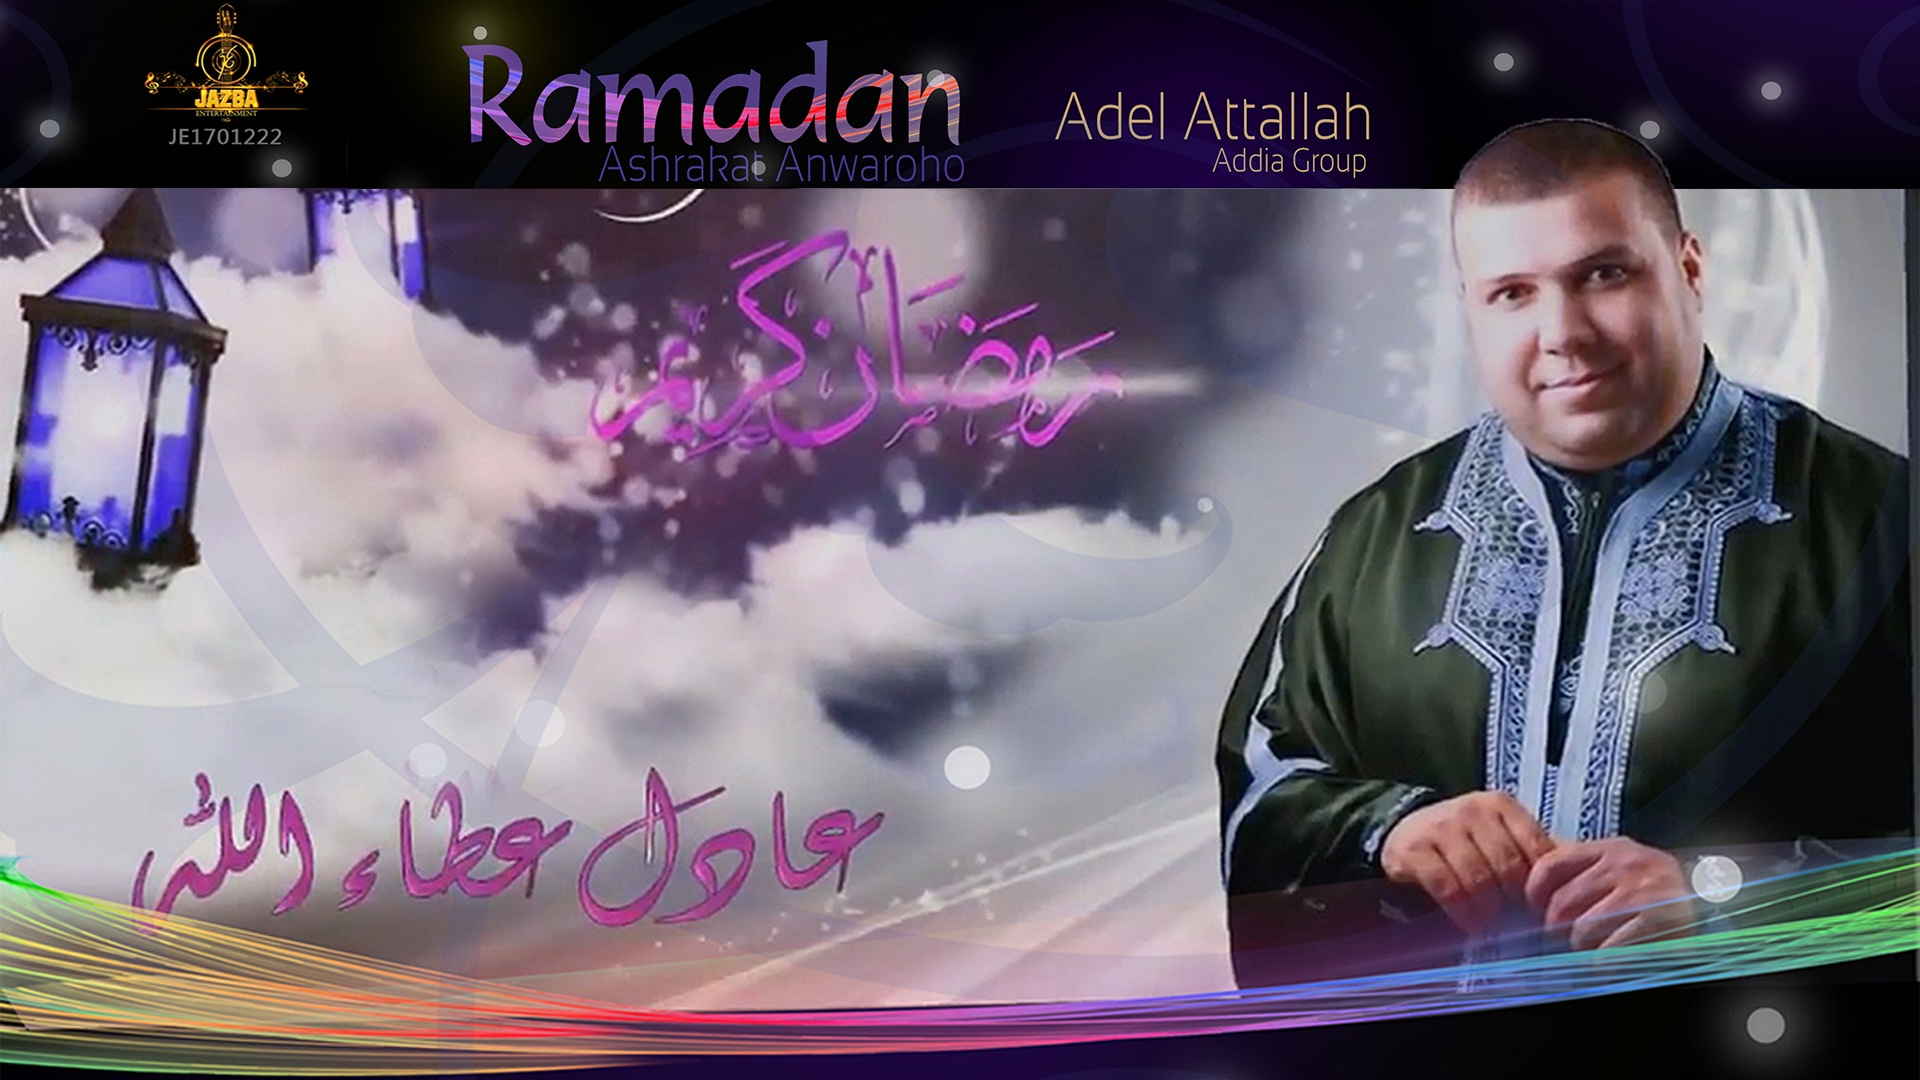 Ramadan Ashrakat Anwaroho by Adel Attallah [Addia Group